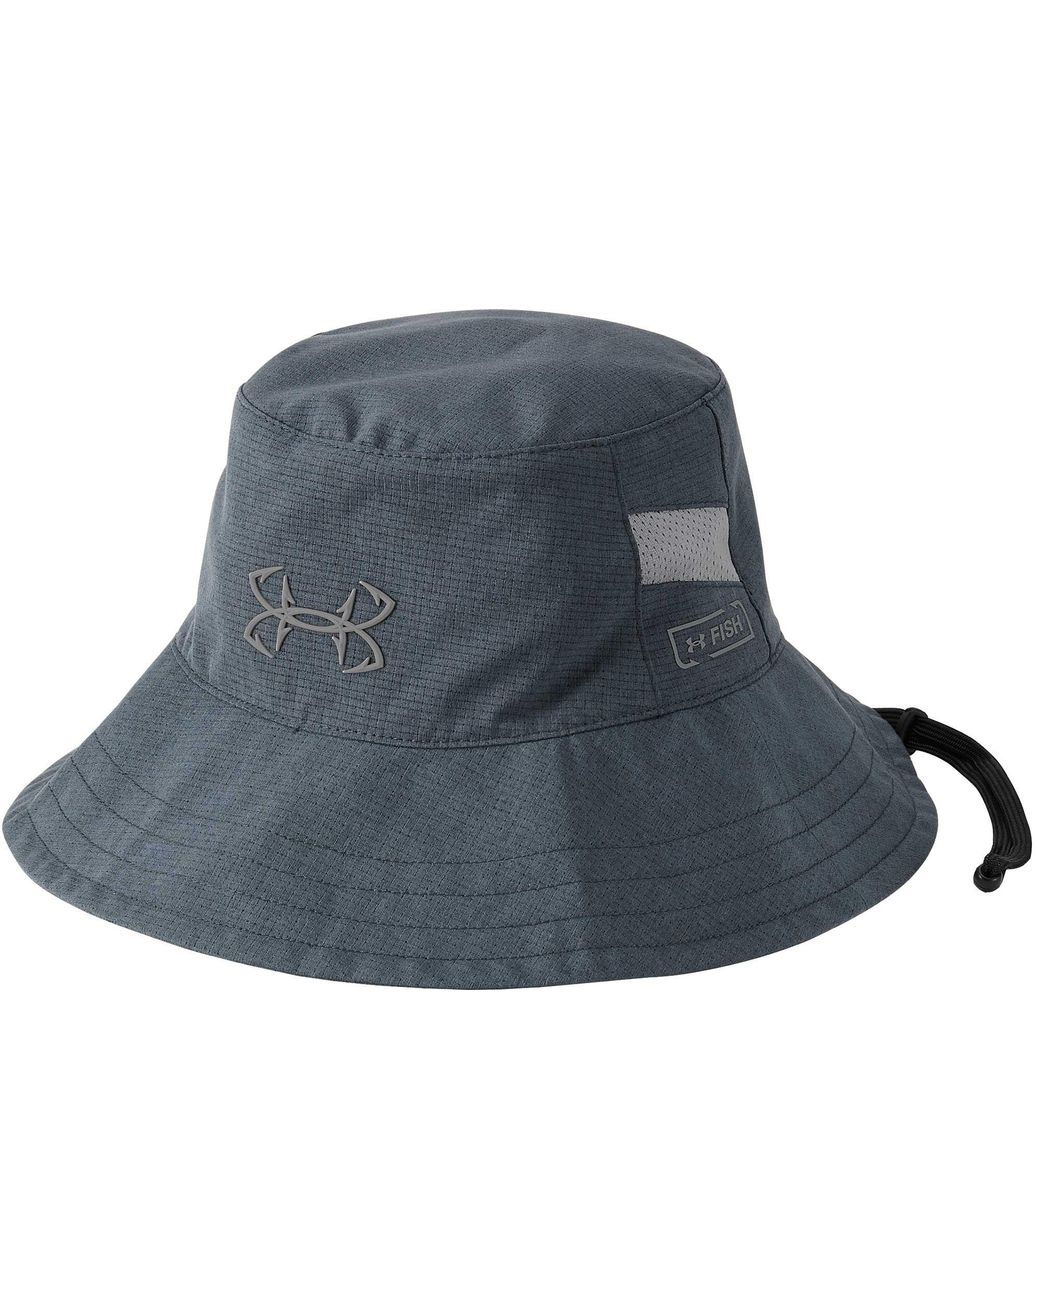 3b190802788 Lyst - Under Armour Thermocline Bucket Hat in Gray for Men